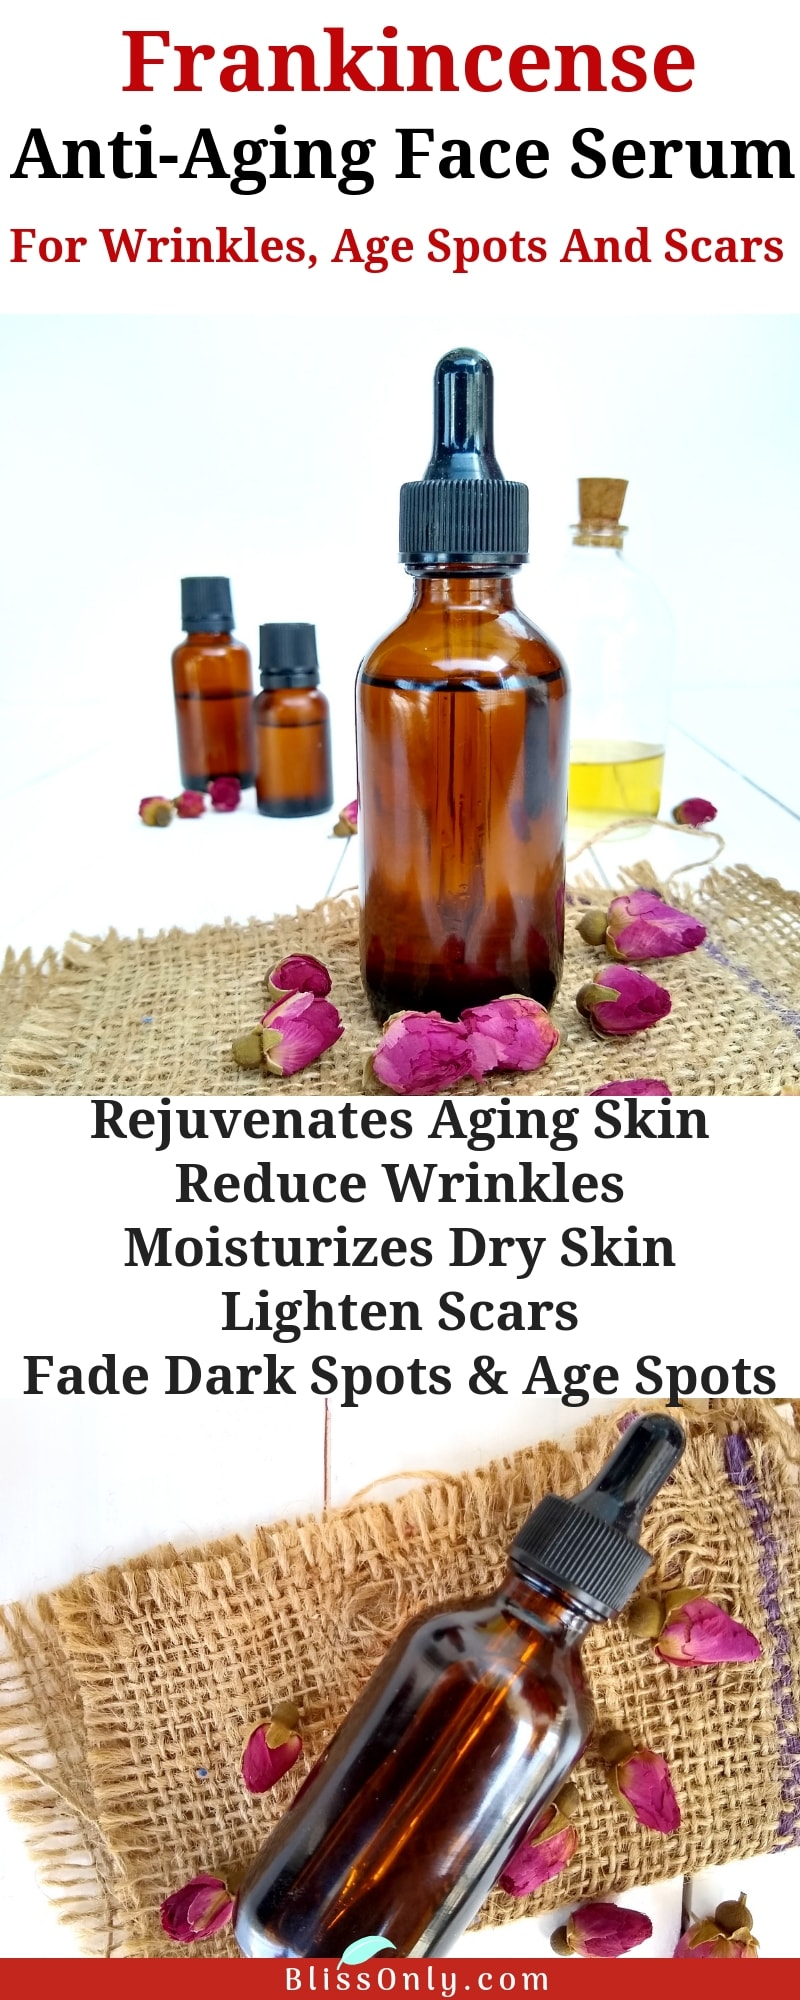 anti-aging skin care recipes